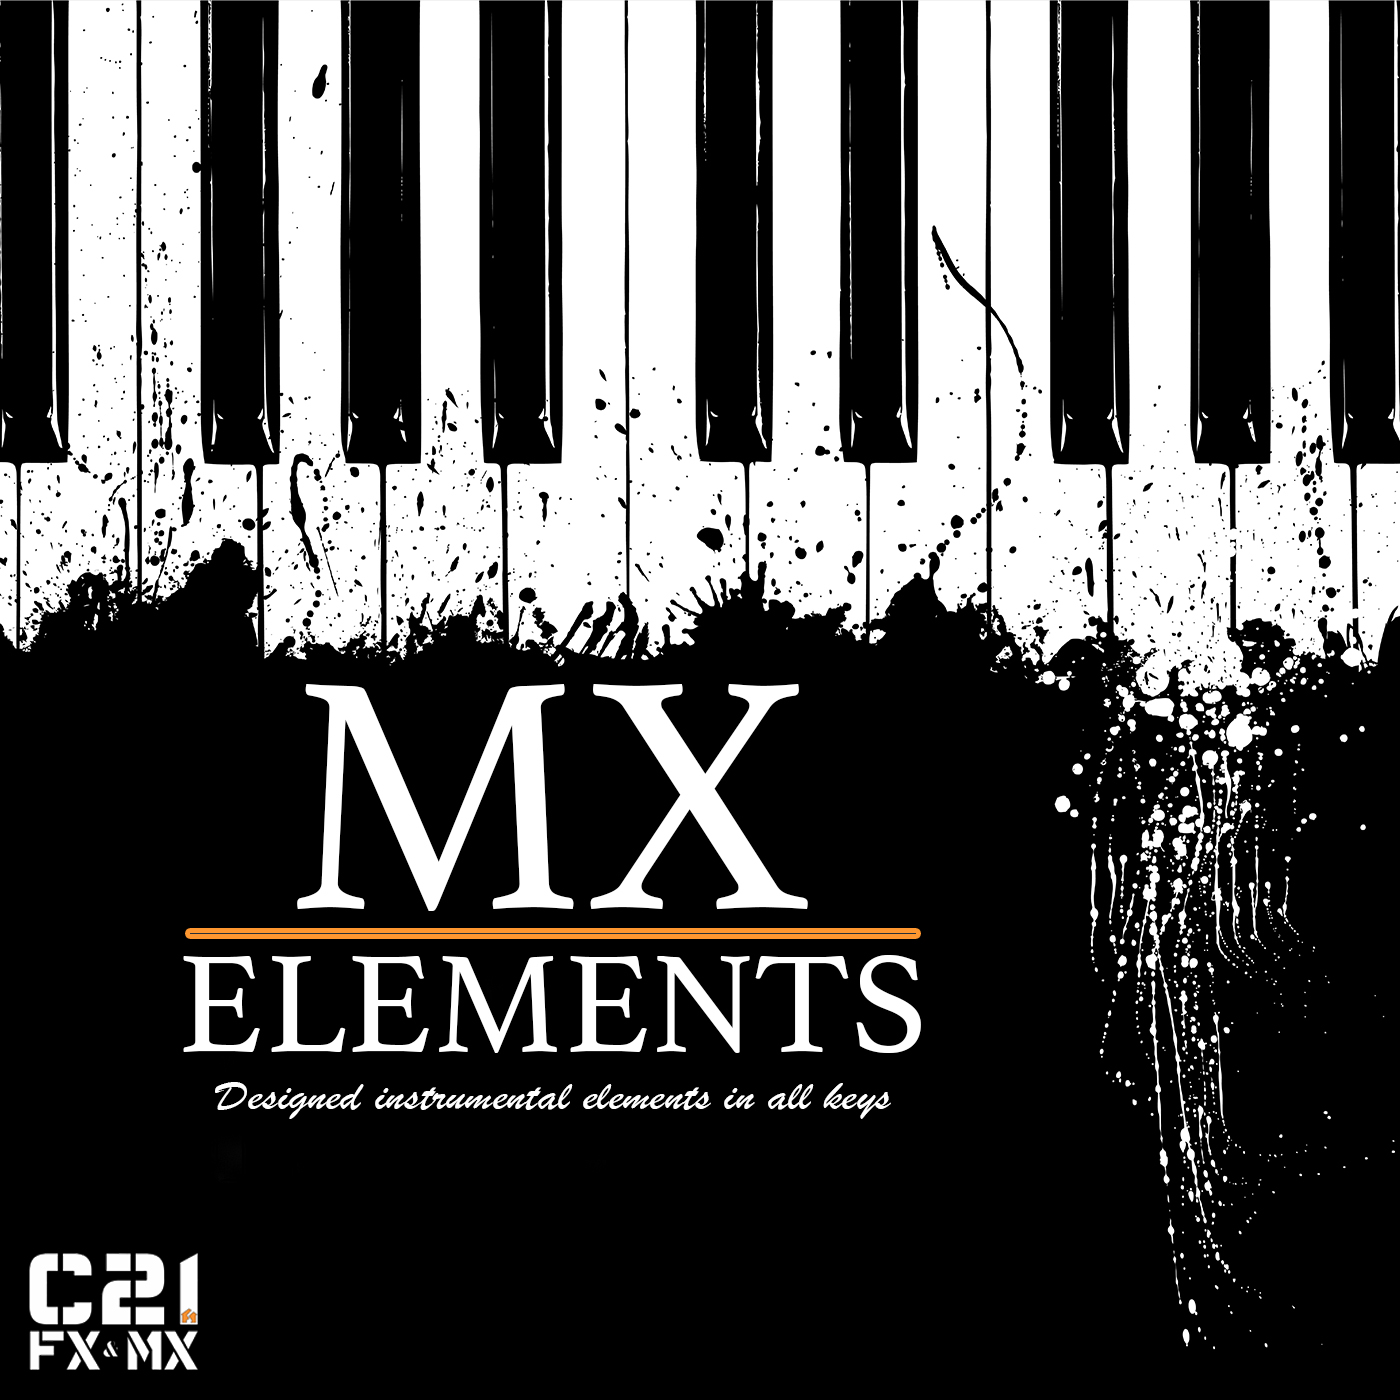 MX ELEMENTS SQUARE.jpg